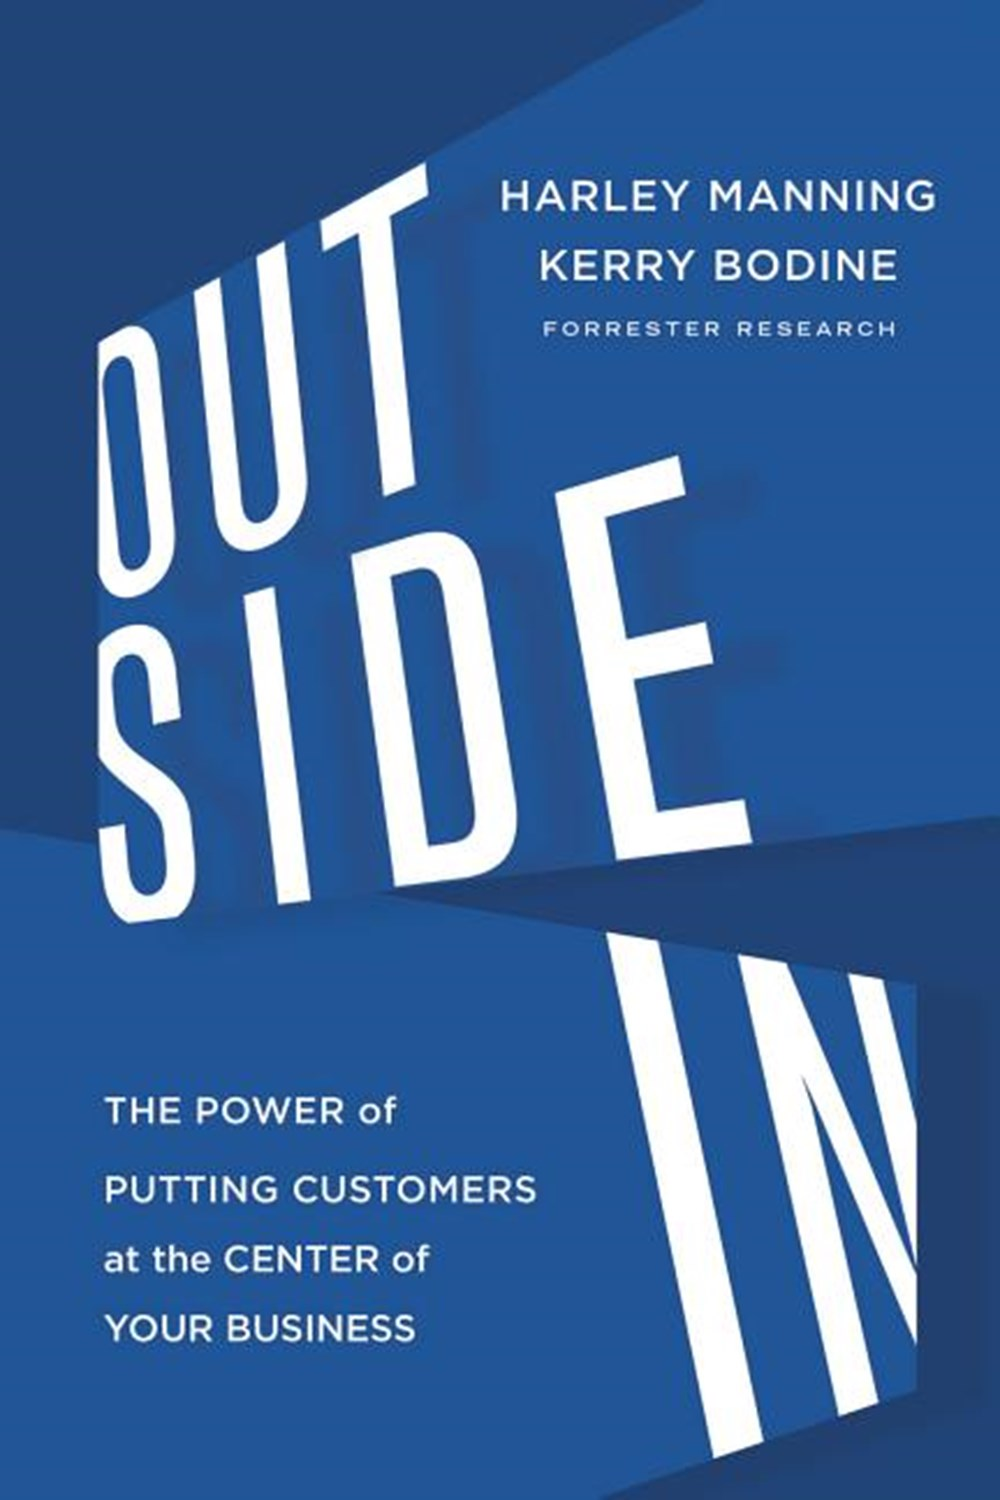 Outside in The Power of Putting Customers at the Center of Your Business